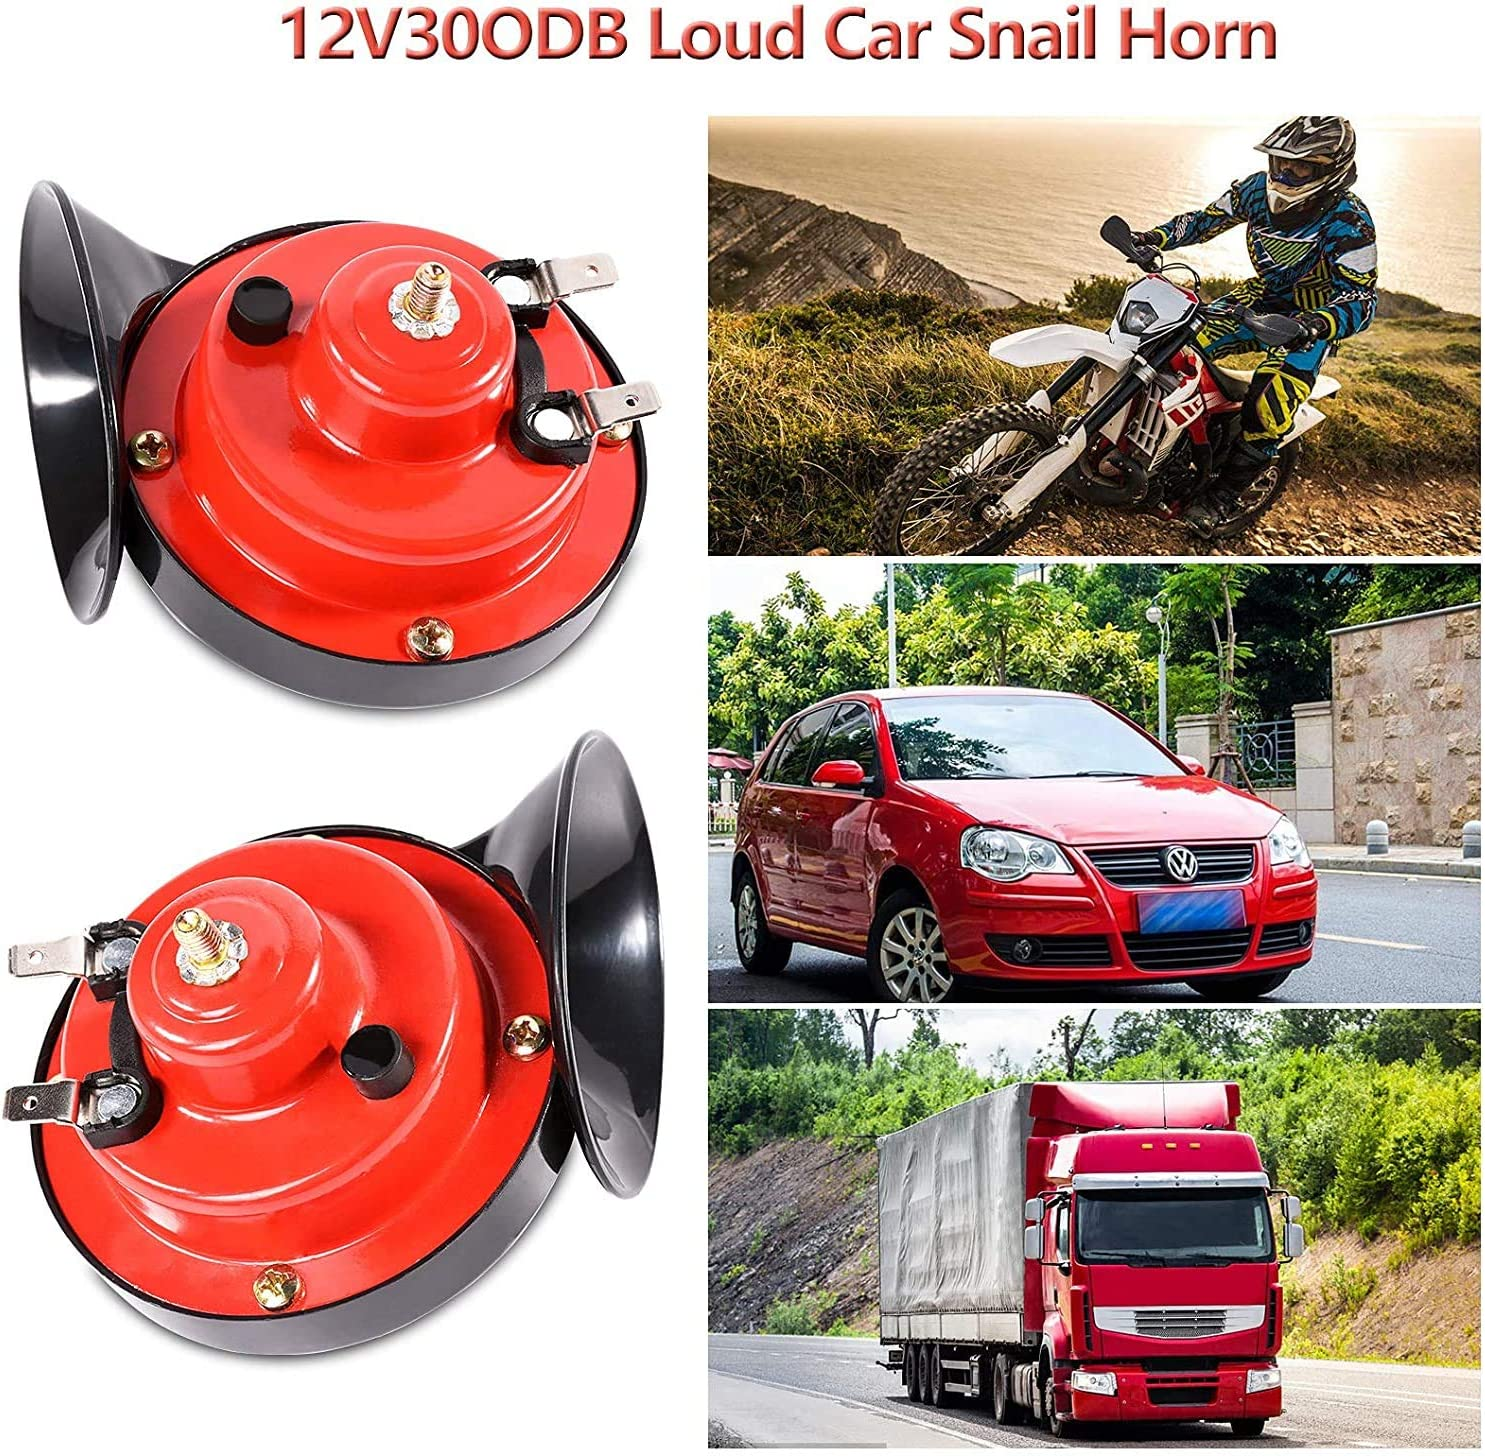 12v Waterproof Double Horn Raging Sound Raging Sound for Motorcycle Car Motorcycle 2 PCS 300DB Super Loud Train Horn for Truck Train Boat Car Air Electric Snail Single Horn